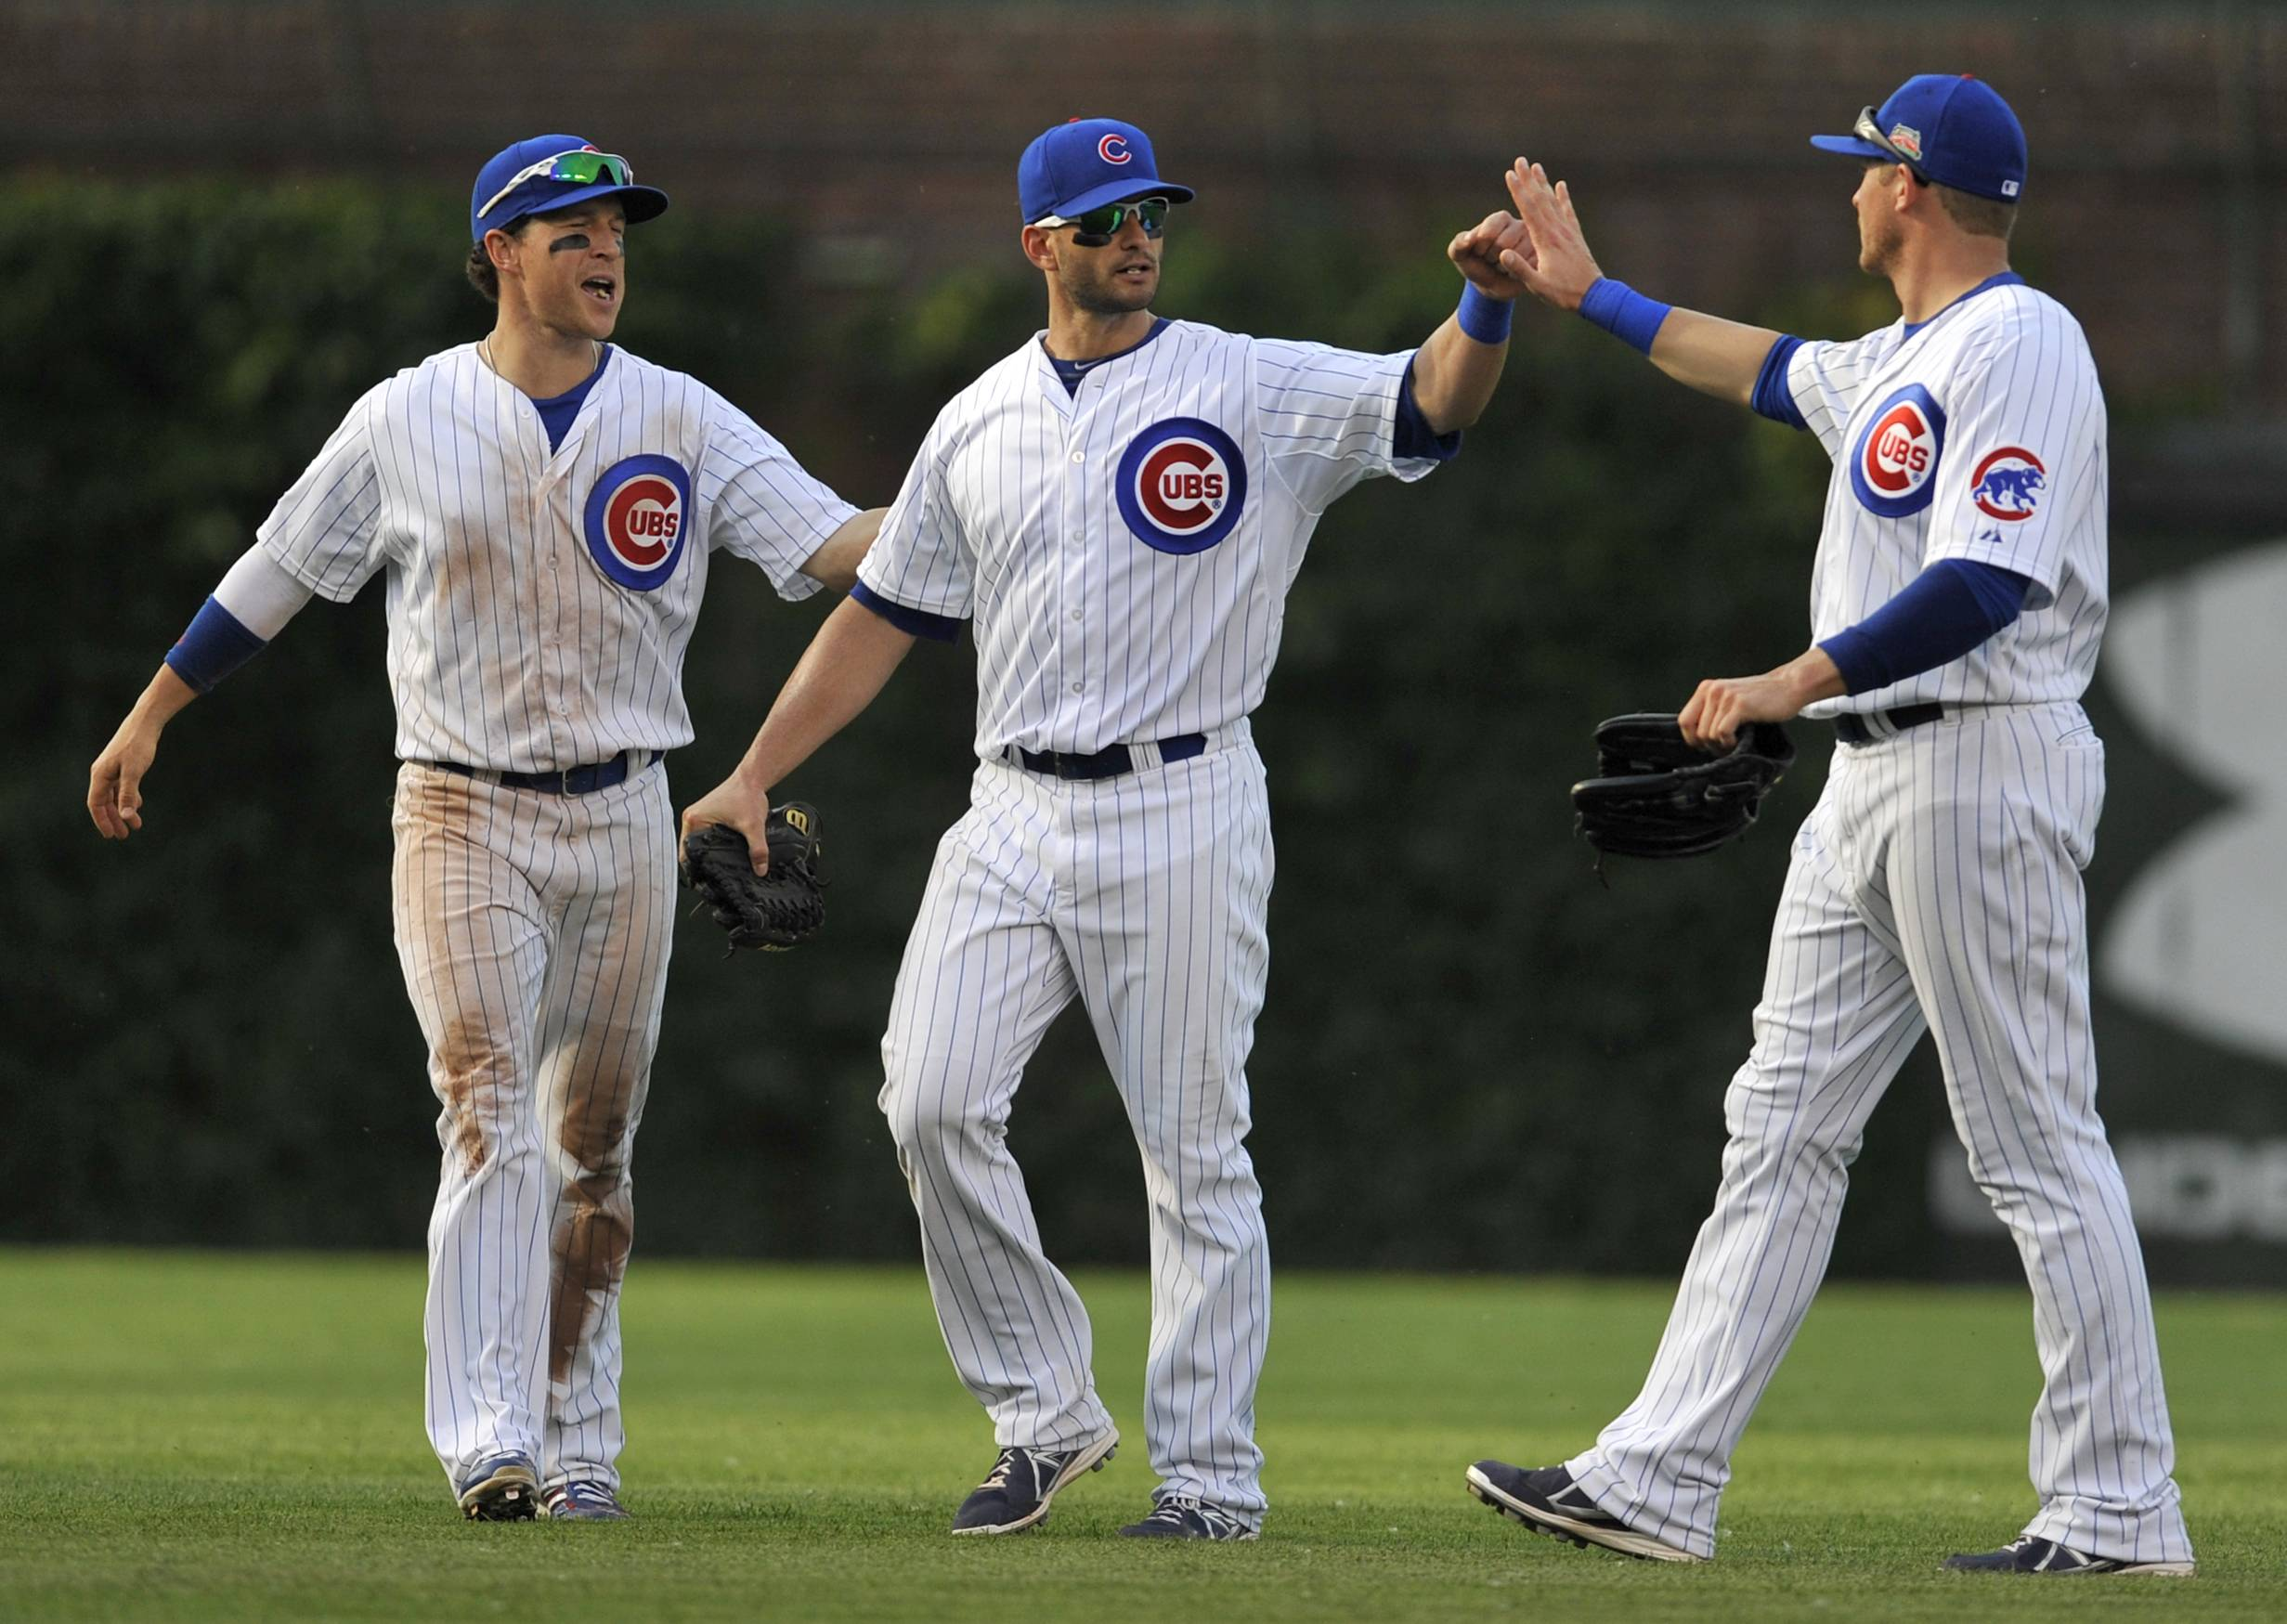 Cubs outfielders Justin Ruggiano, left, Chris Coghlan, center, and Ryan Sweeney right, celebrate after the Cubs defeated the Washington Nationals 7-2 on Friday. The Cubs are 21-17 since May 17, but playing above .500 baseball will be difficult if -- as expected -- the team makes a flurry of trades before July 31.